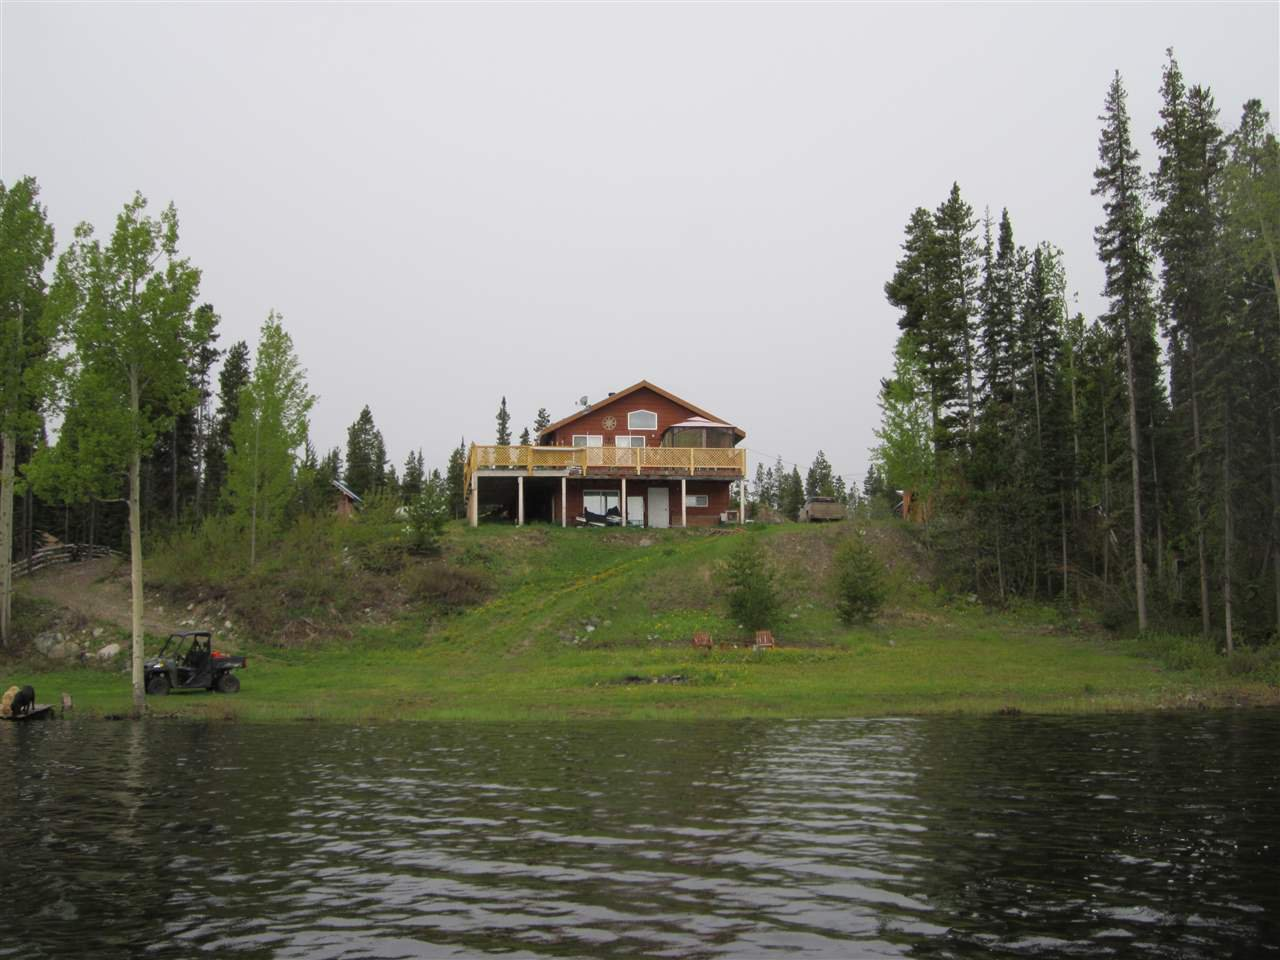 Main Photo: 3126 ELSEY Road: Williams Lake - Rural West House for sale (Williams Lake (Zone 27))  : MLS®# R2467730